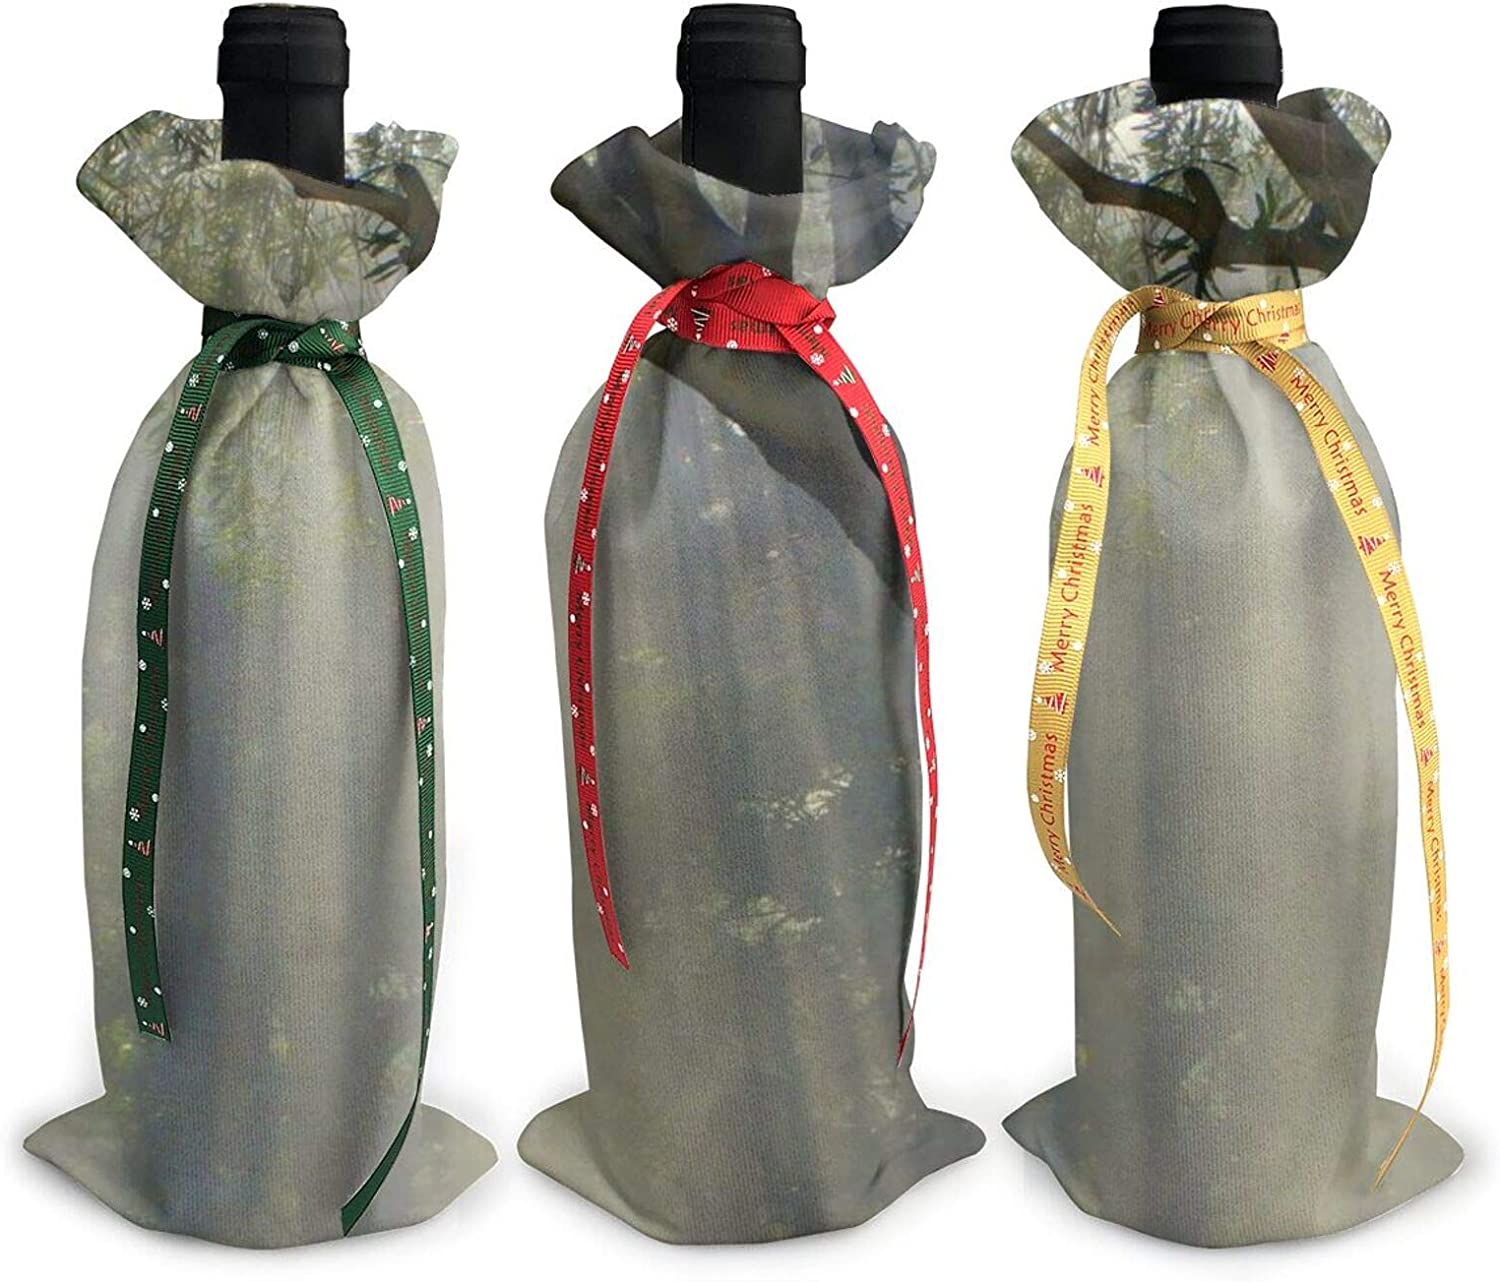 Foggy Olive Tree 3pcs Wine Bottle Cover Wine Bottle Gift Bags For Dinner Party Table Decorations Amazon Ca Home Kitchen